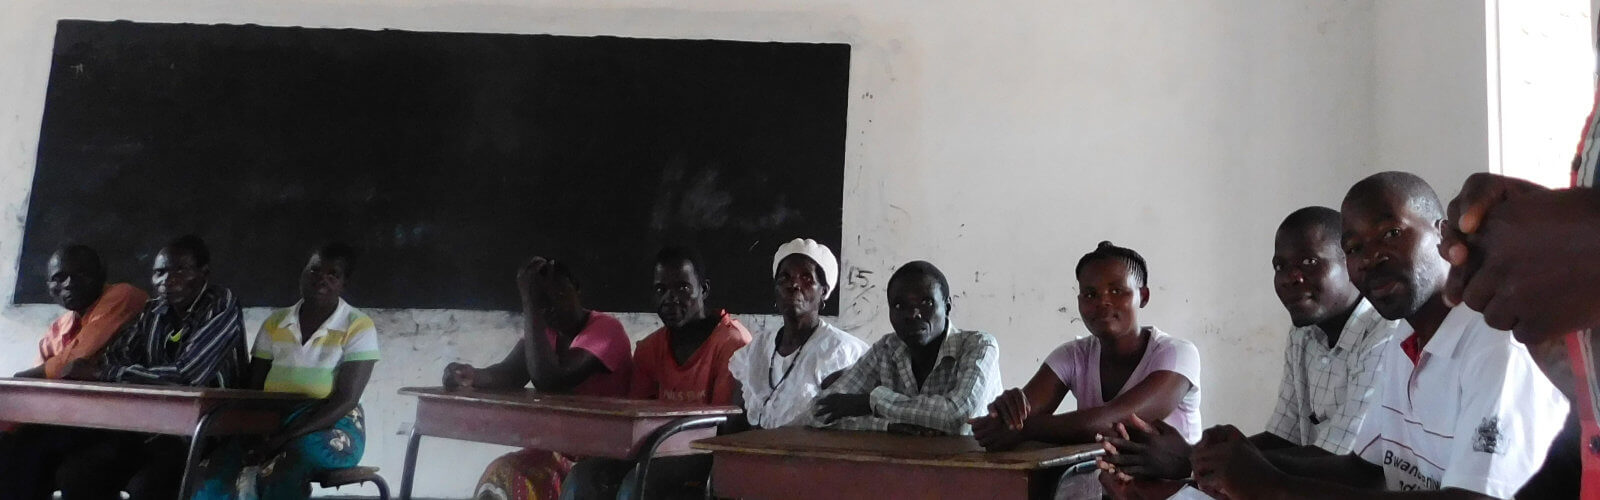 A group of adults sitting on desks in a classroom in front of a blackboard